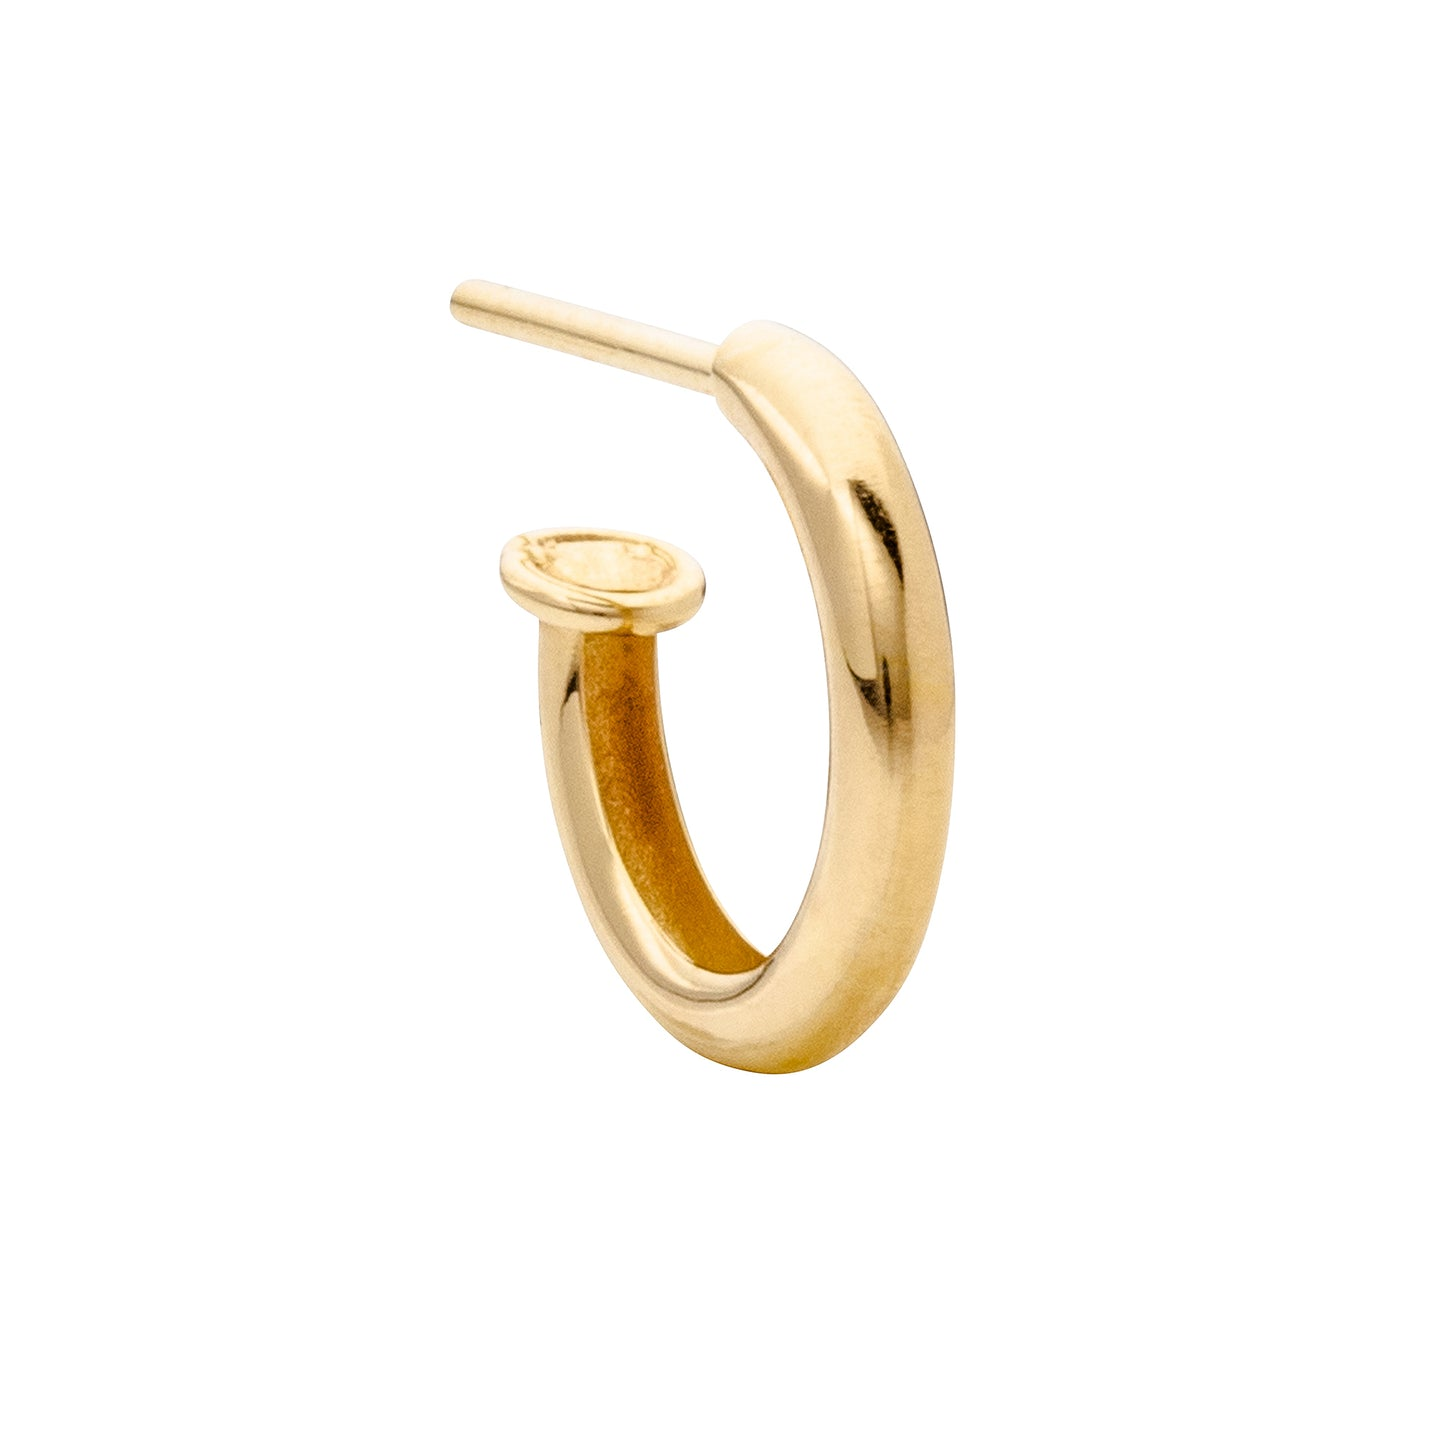 Aynur Abbott - E#44 Gold Hoop medium earring